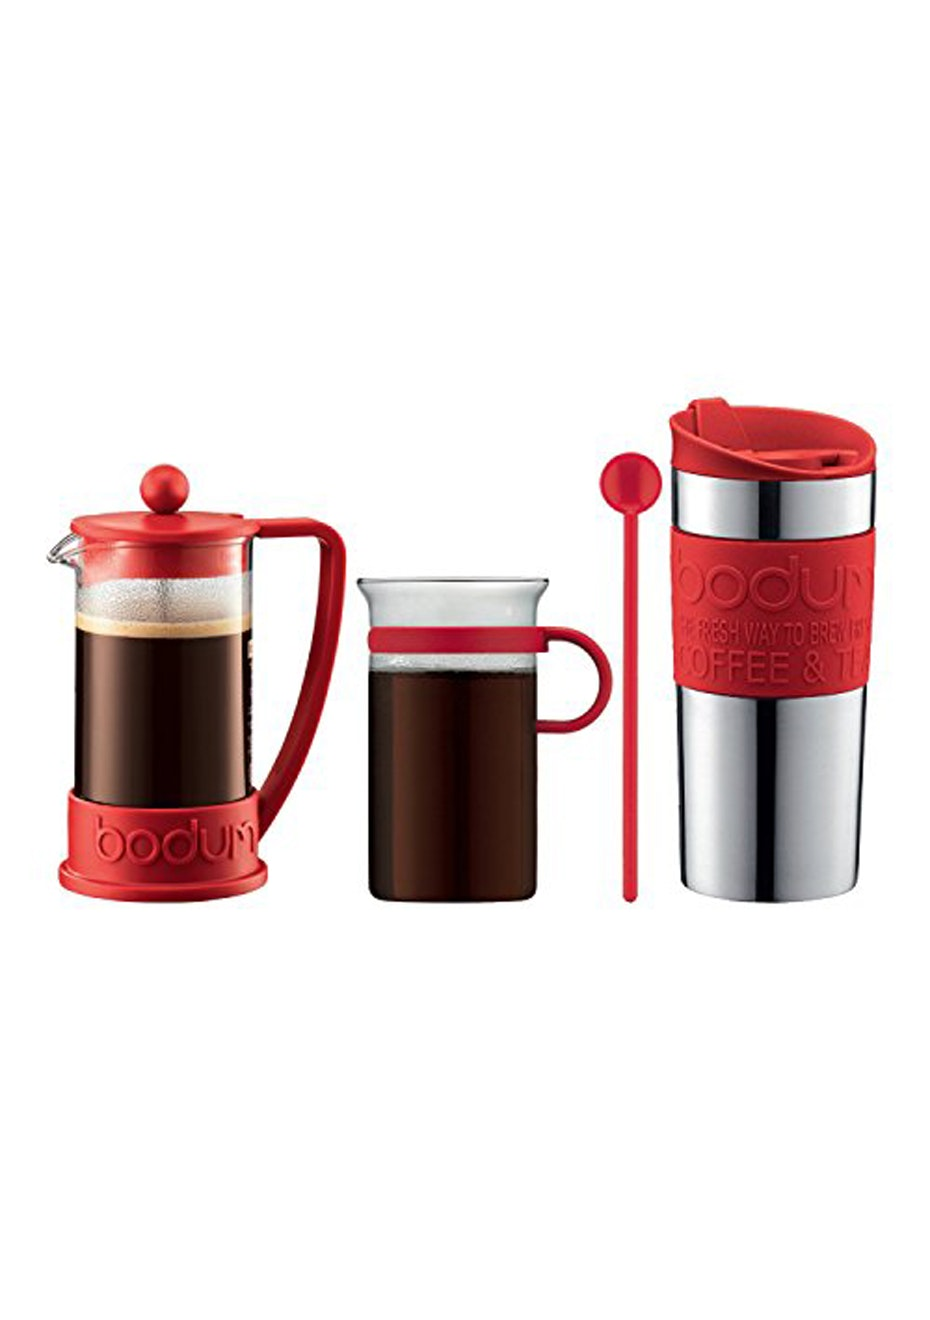 Bodum - 3 Piece Coffee Set - Red